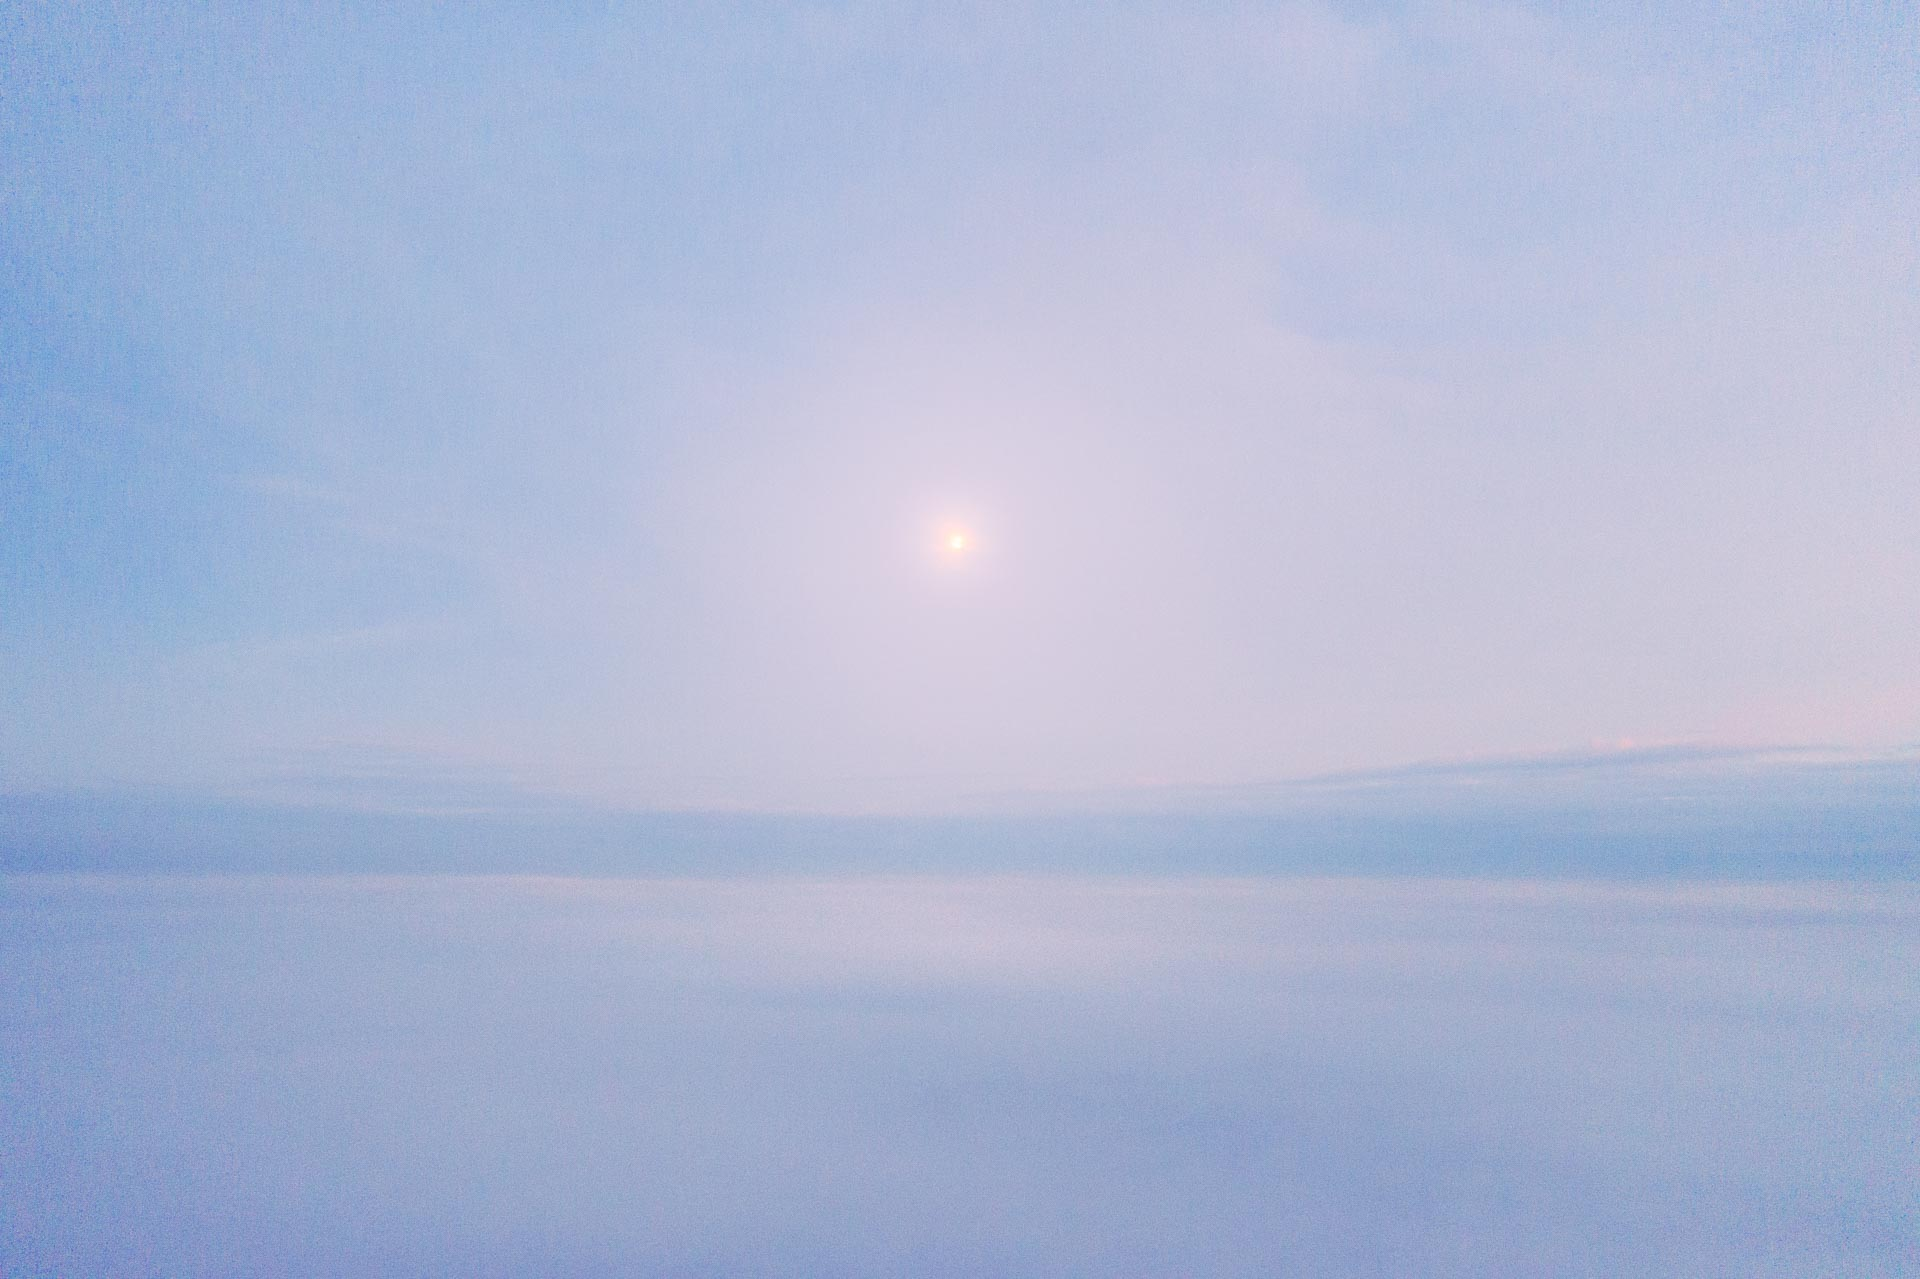 Moonlight illuminates the top of the clouds in a drone landscape